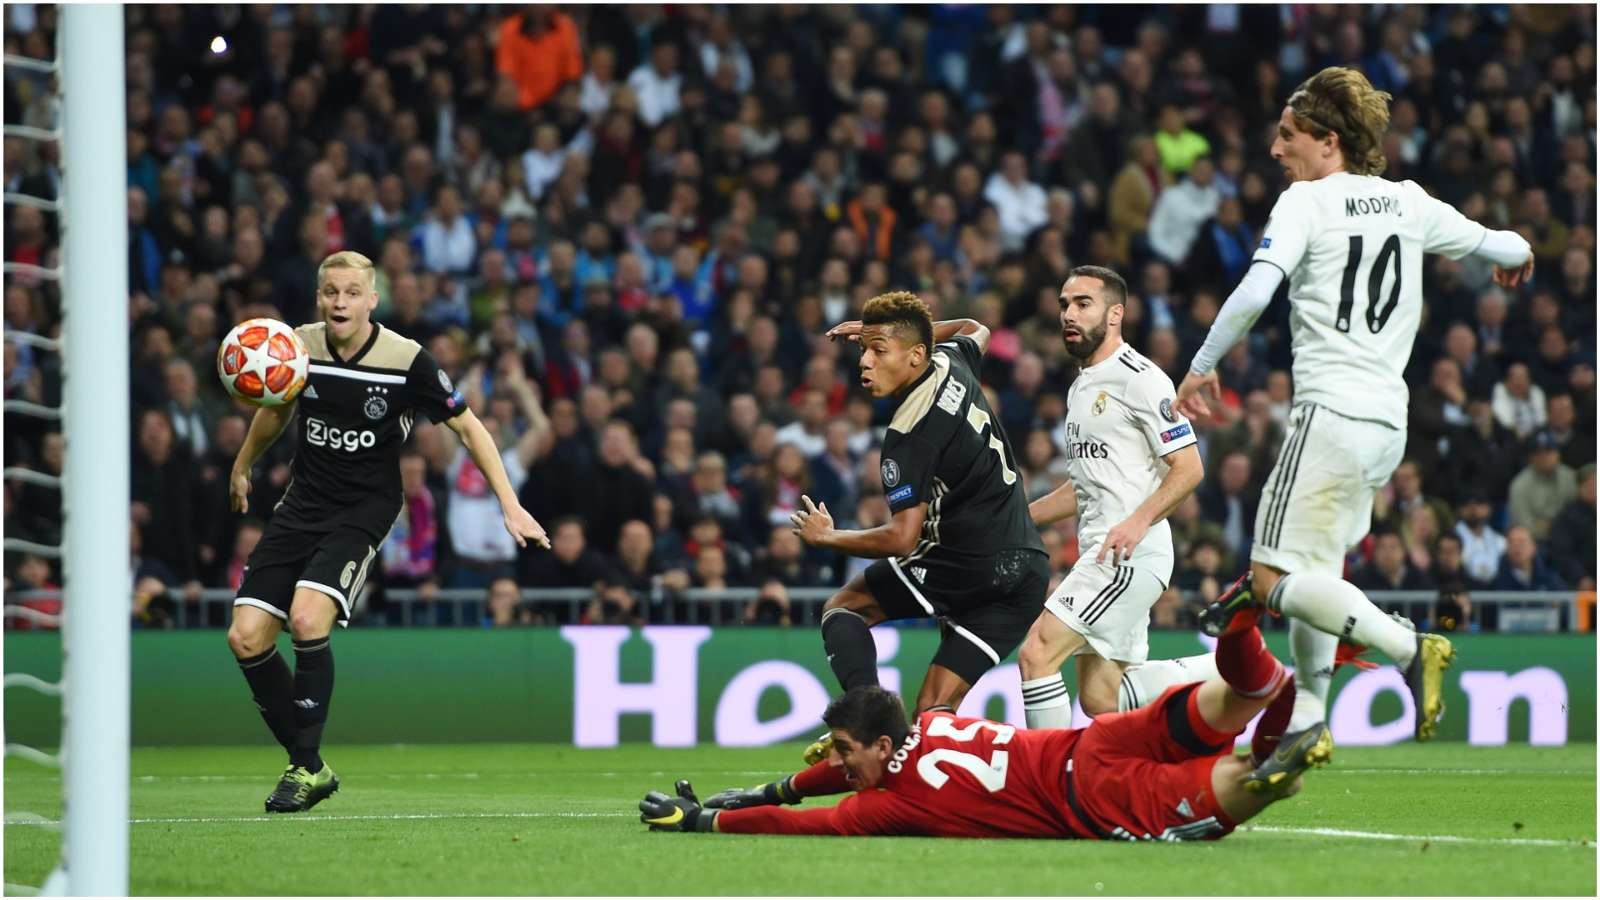 Real Madrid vs Ajax 1-4 (3-5 agg): UEFA Champions League Report & Highlights